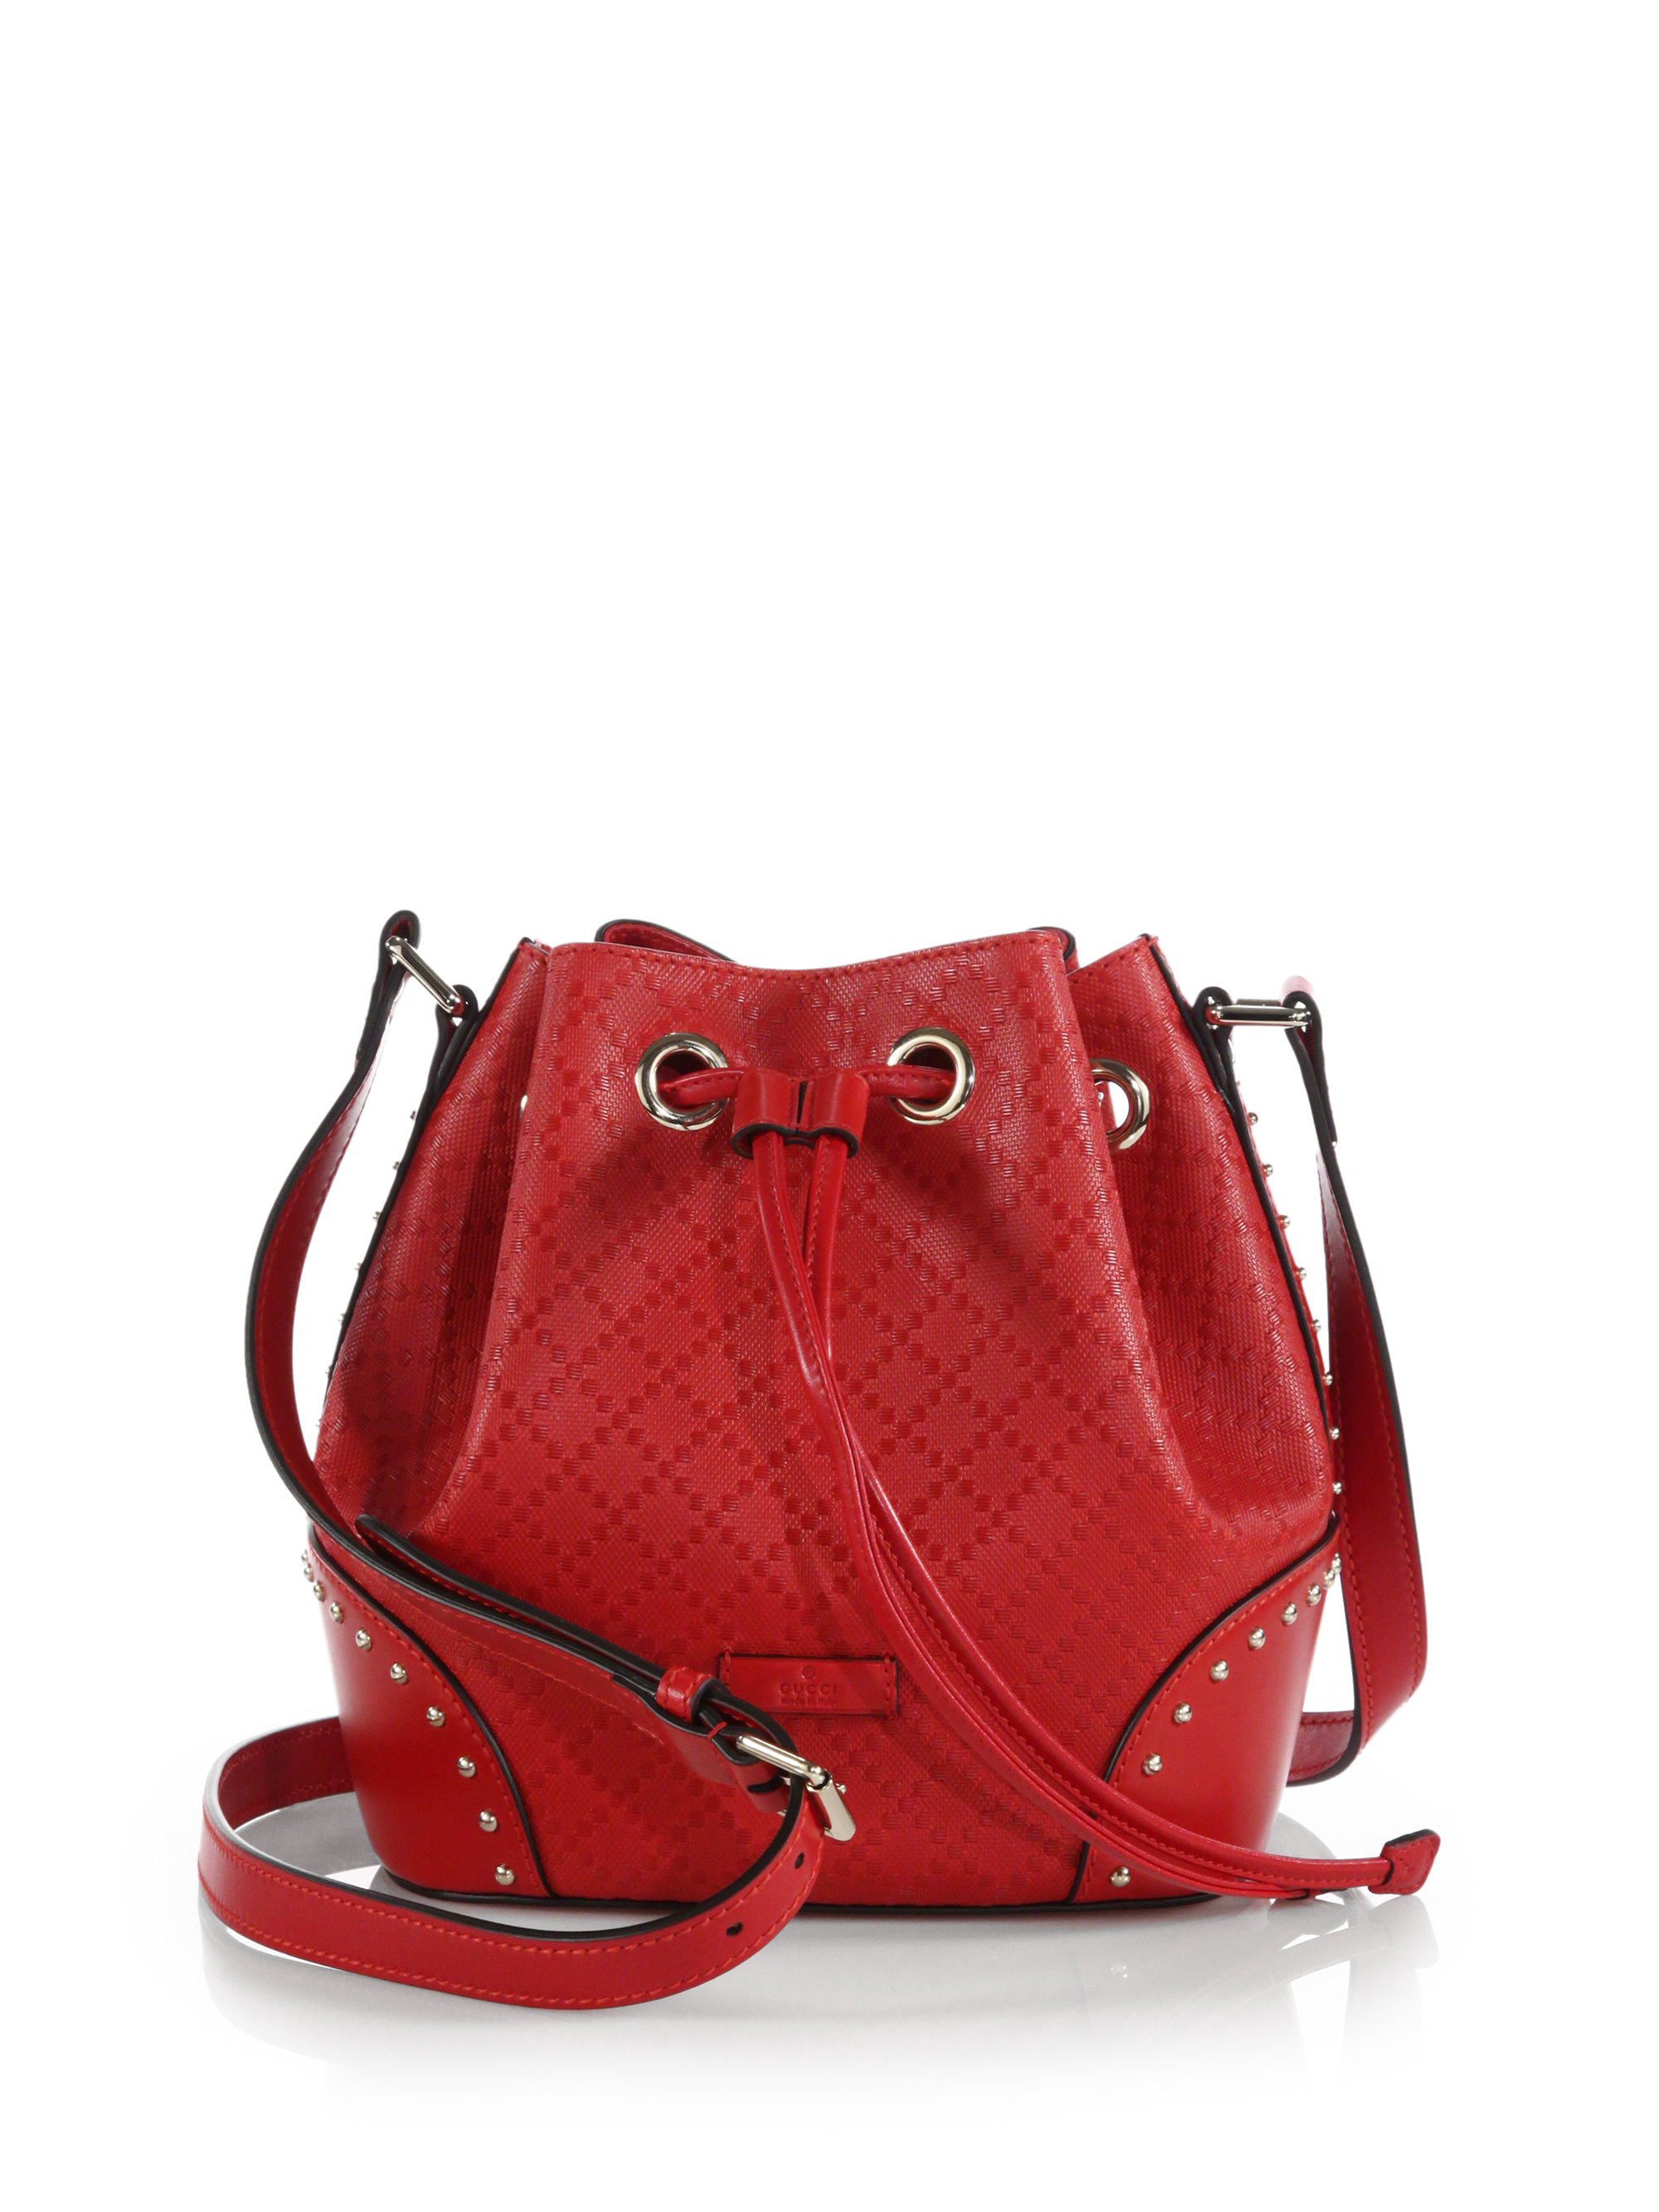 8d1277debe2 Lyst - Gucci Bright Diamante Leather Bucket Bag in Red